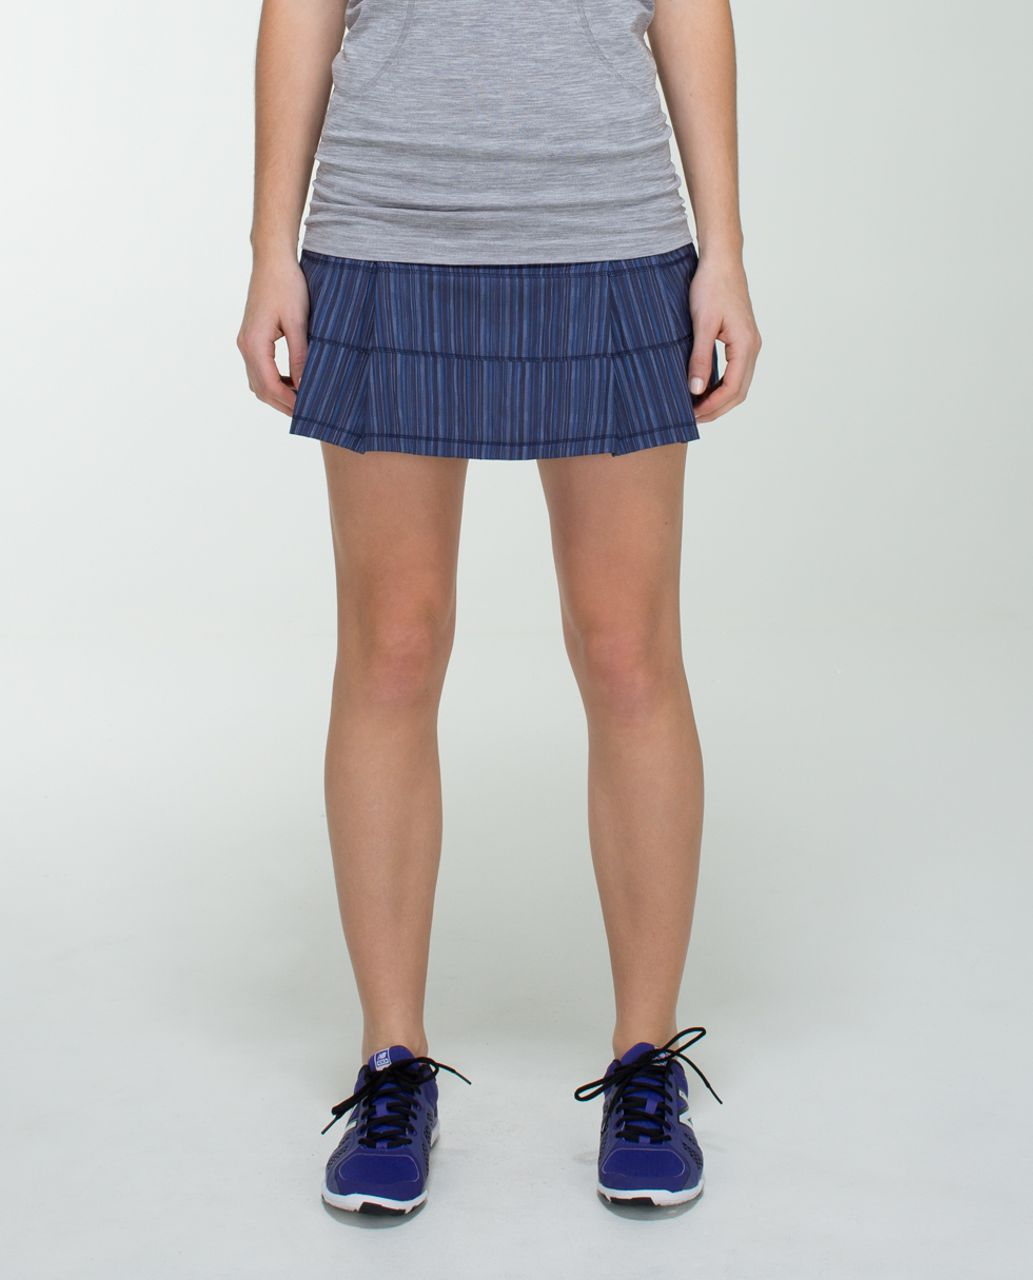 Lululemon Pace Rival Skirt (Regular) *2-way Stretch - Wee Are From Space Cadet Blue / Cadet Blue